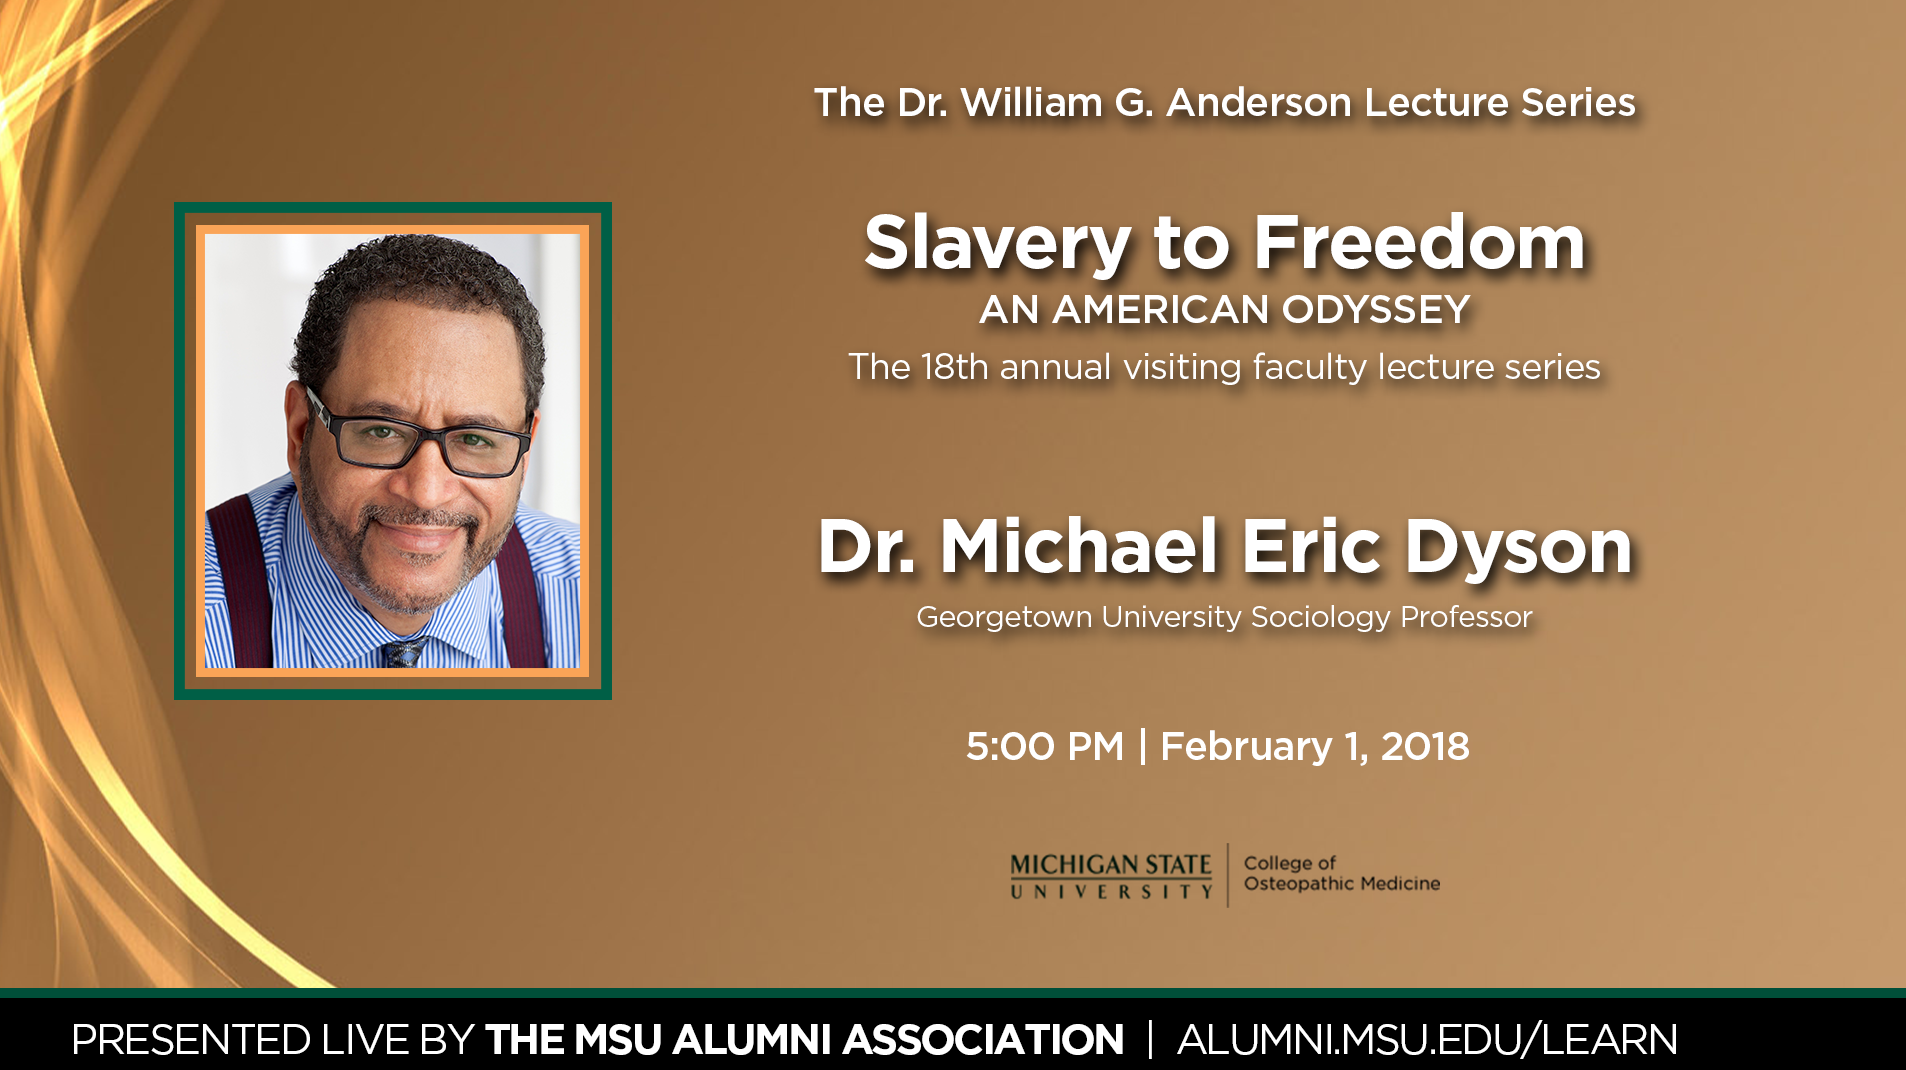 livestream cover image for Slavery to Freedom | Dr. Michael Eric Dyson